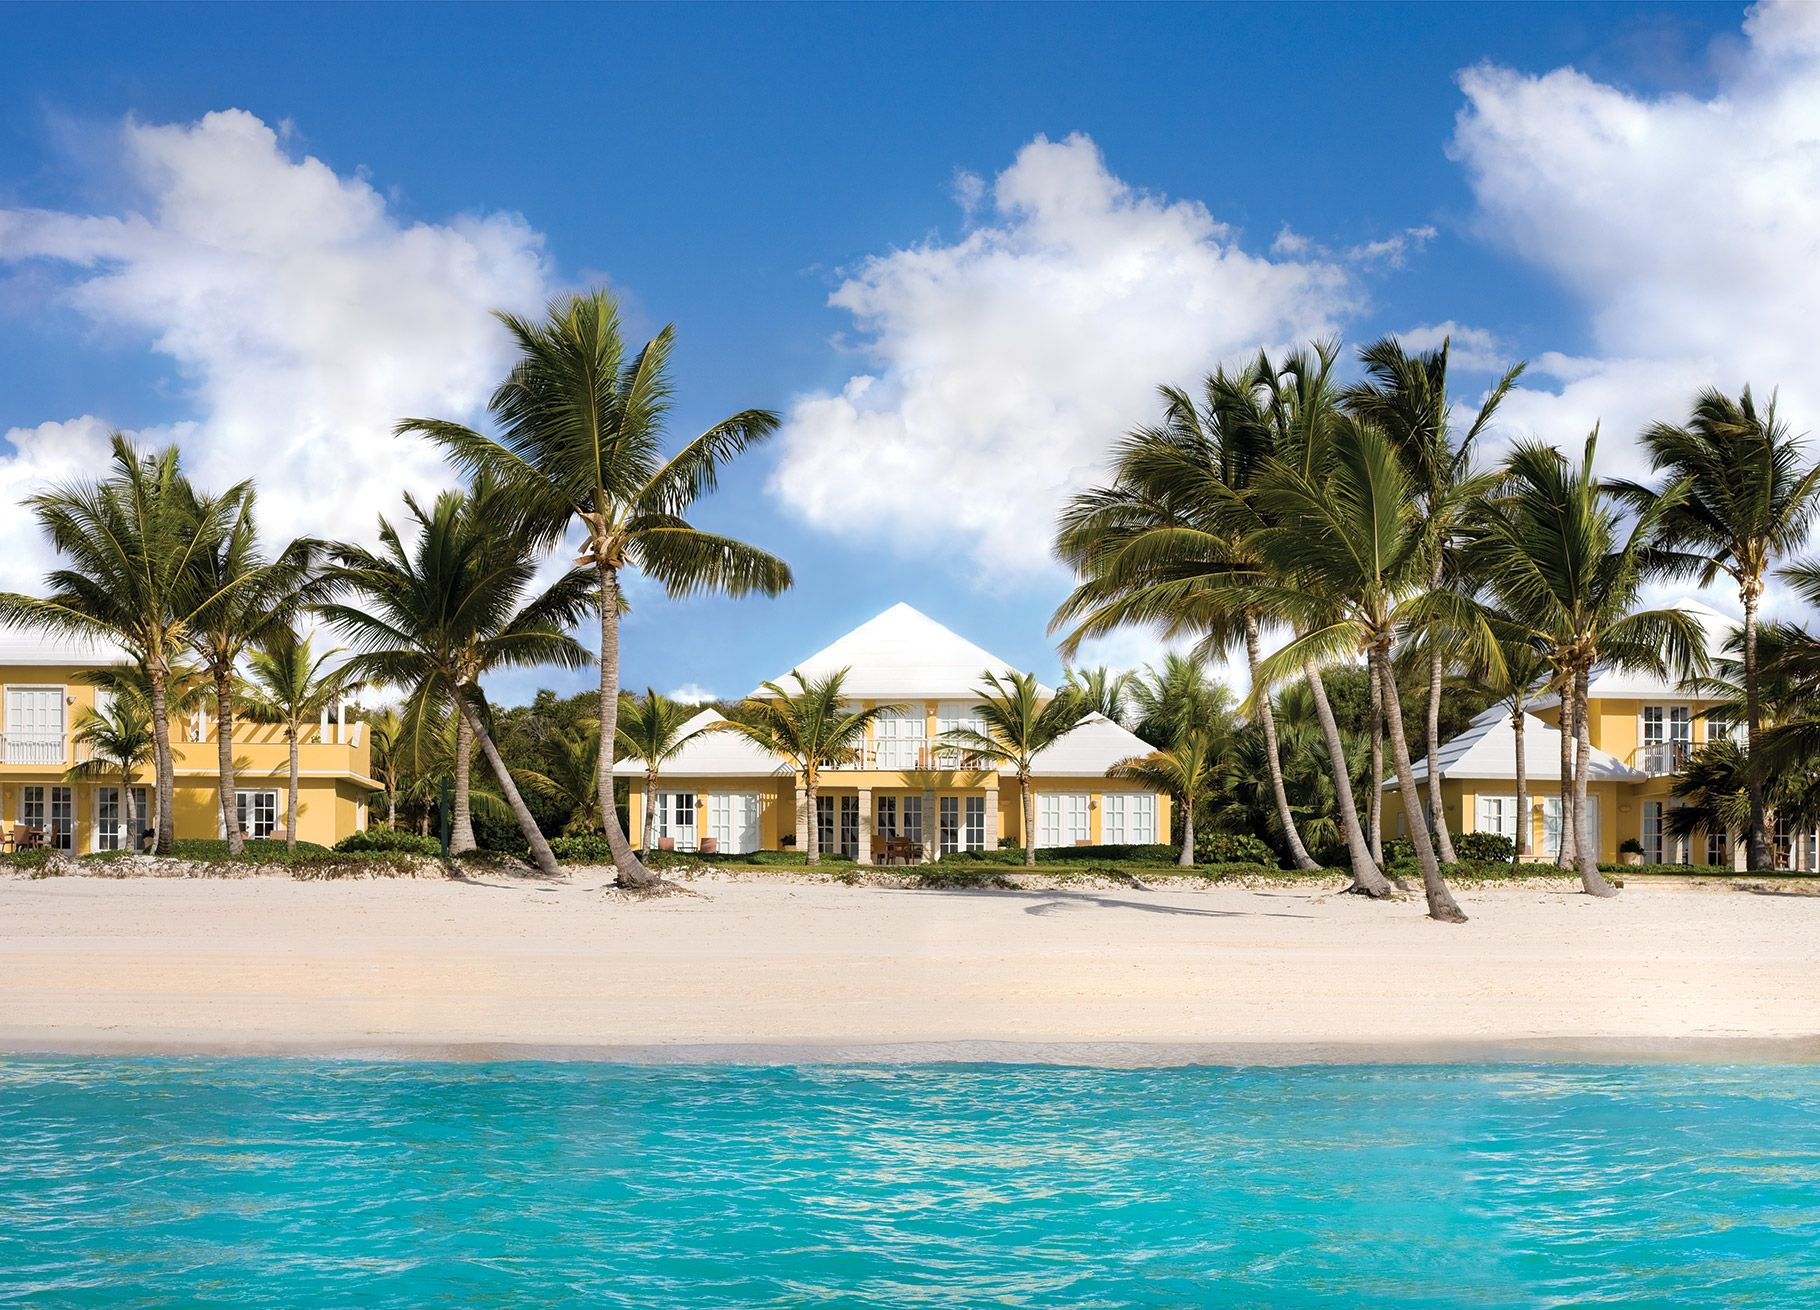 Luxury punta cana villas vacation rentals tortuga bay a member of the puntacana resort